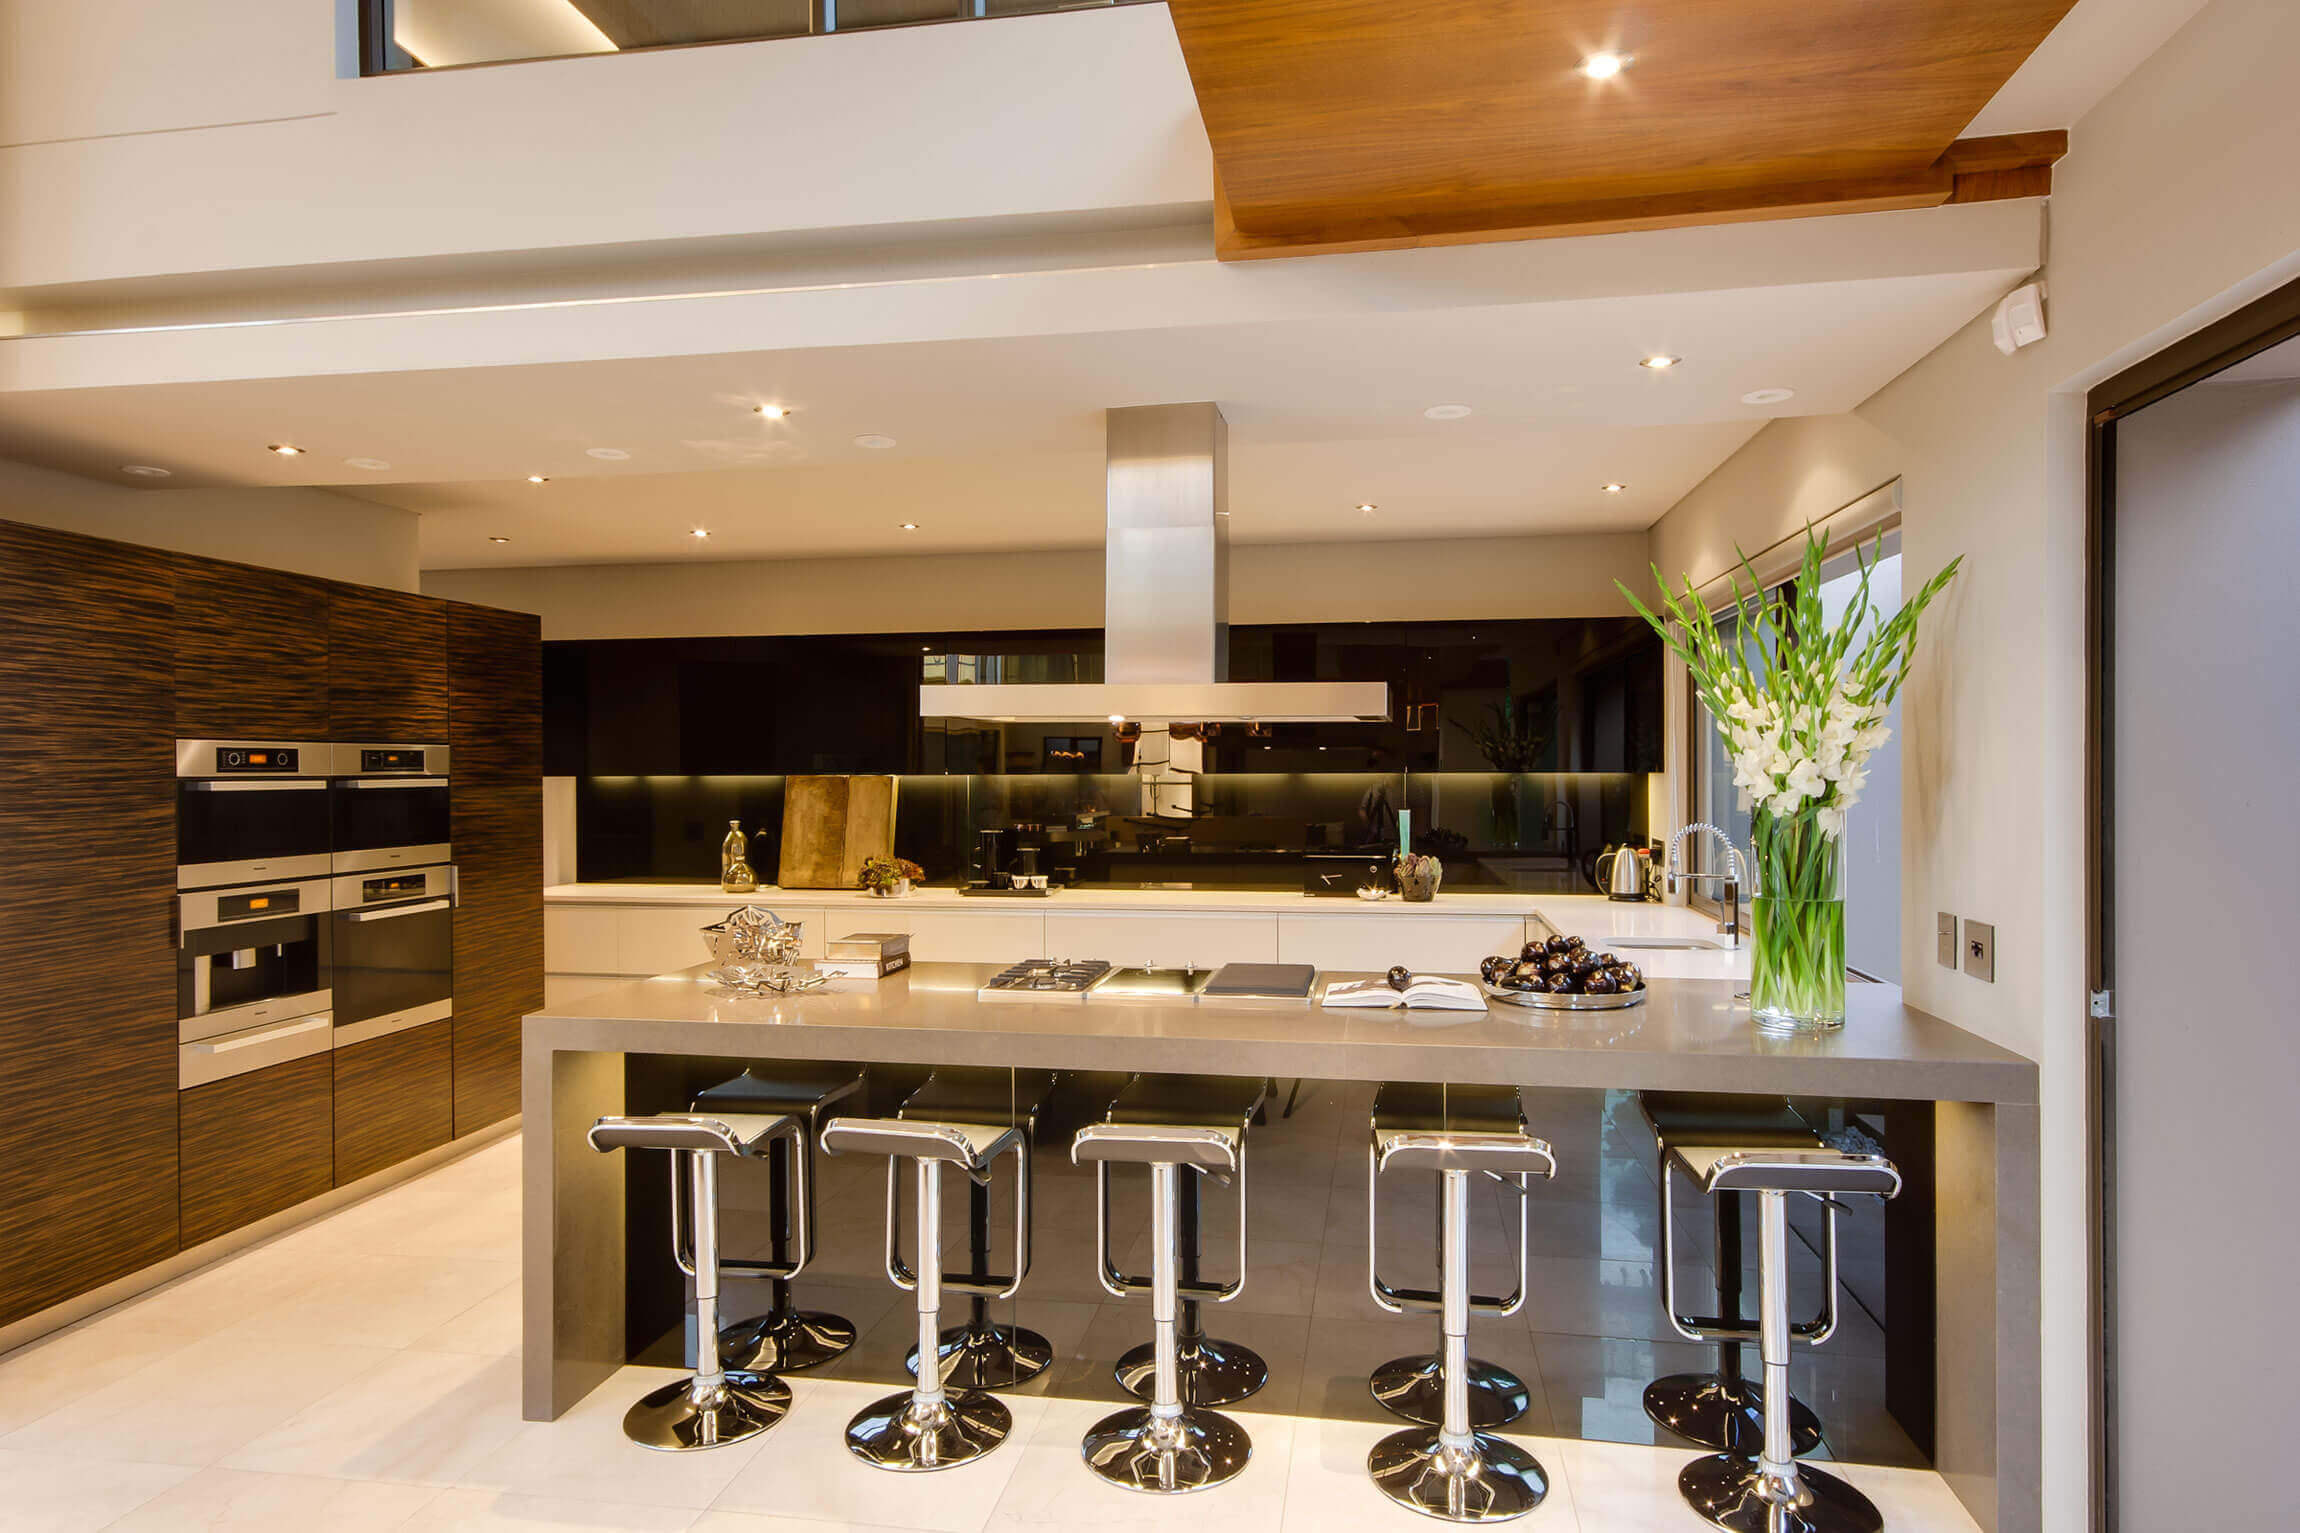 This long, fabulous kitchen island ties in perfectly with the feel of the room. The light gray color scheme of the island, luxury kitchen counter stools, and grained dark wood cabinets extend the modern look of the kitchen